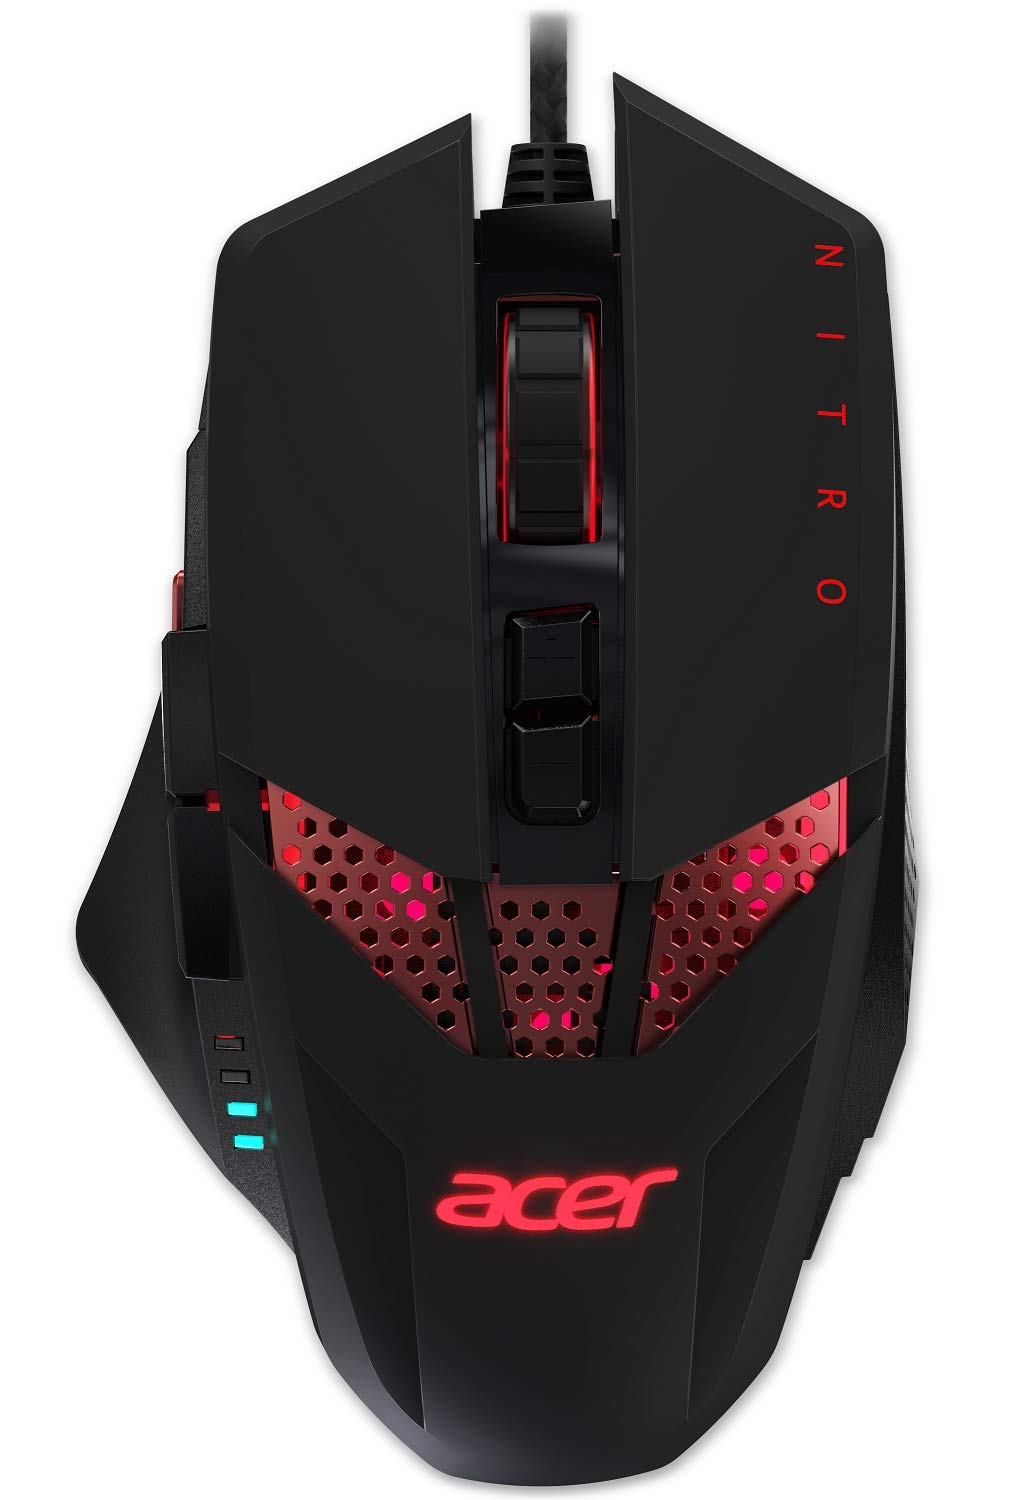 Acer Nitro NMW810 Gaming Mouse